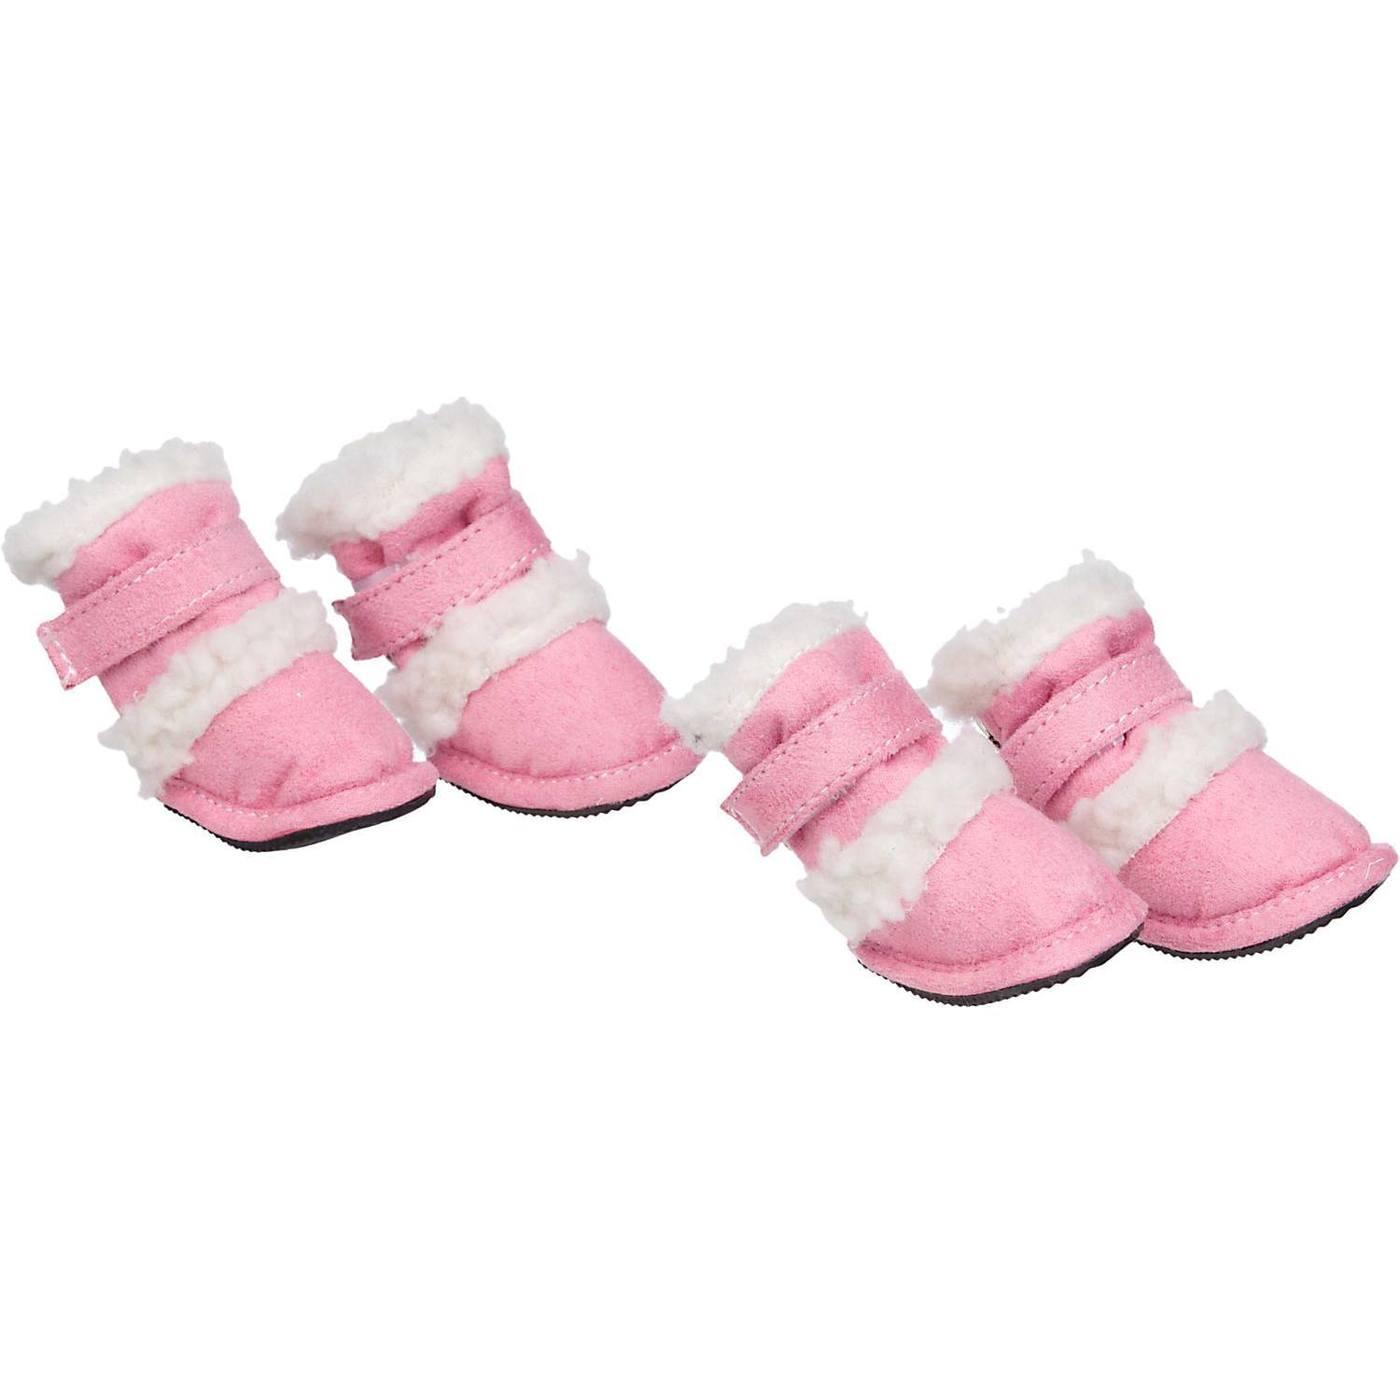 Pet Life 'Duggz' 3M Insulated Winter Fashion Dog Booties - Pink